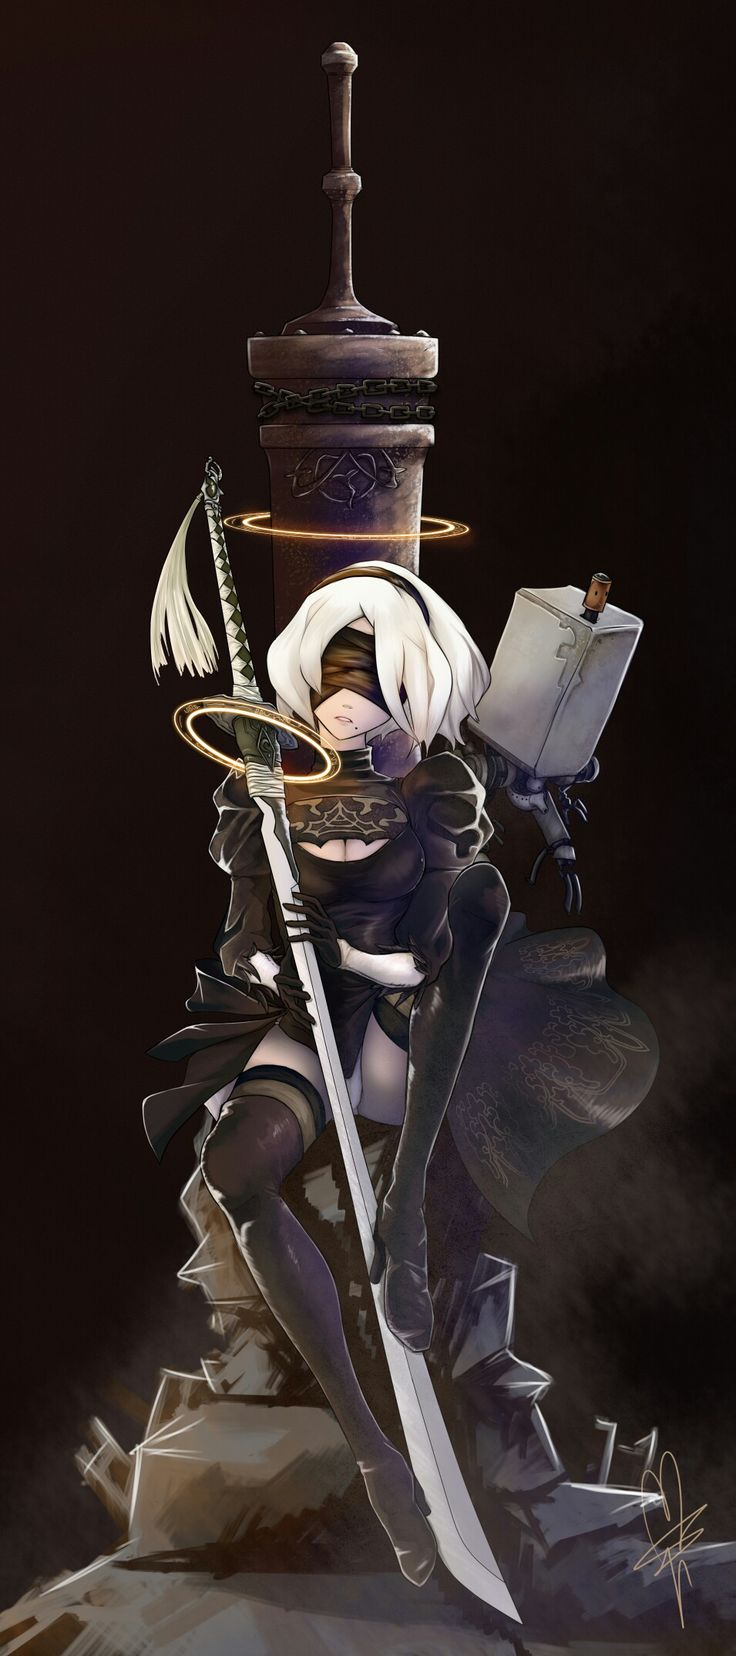 Character Design Nier Automata : Best nier b images on pinterest videogames video